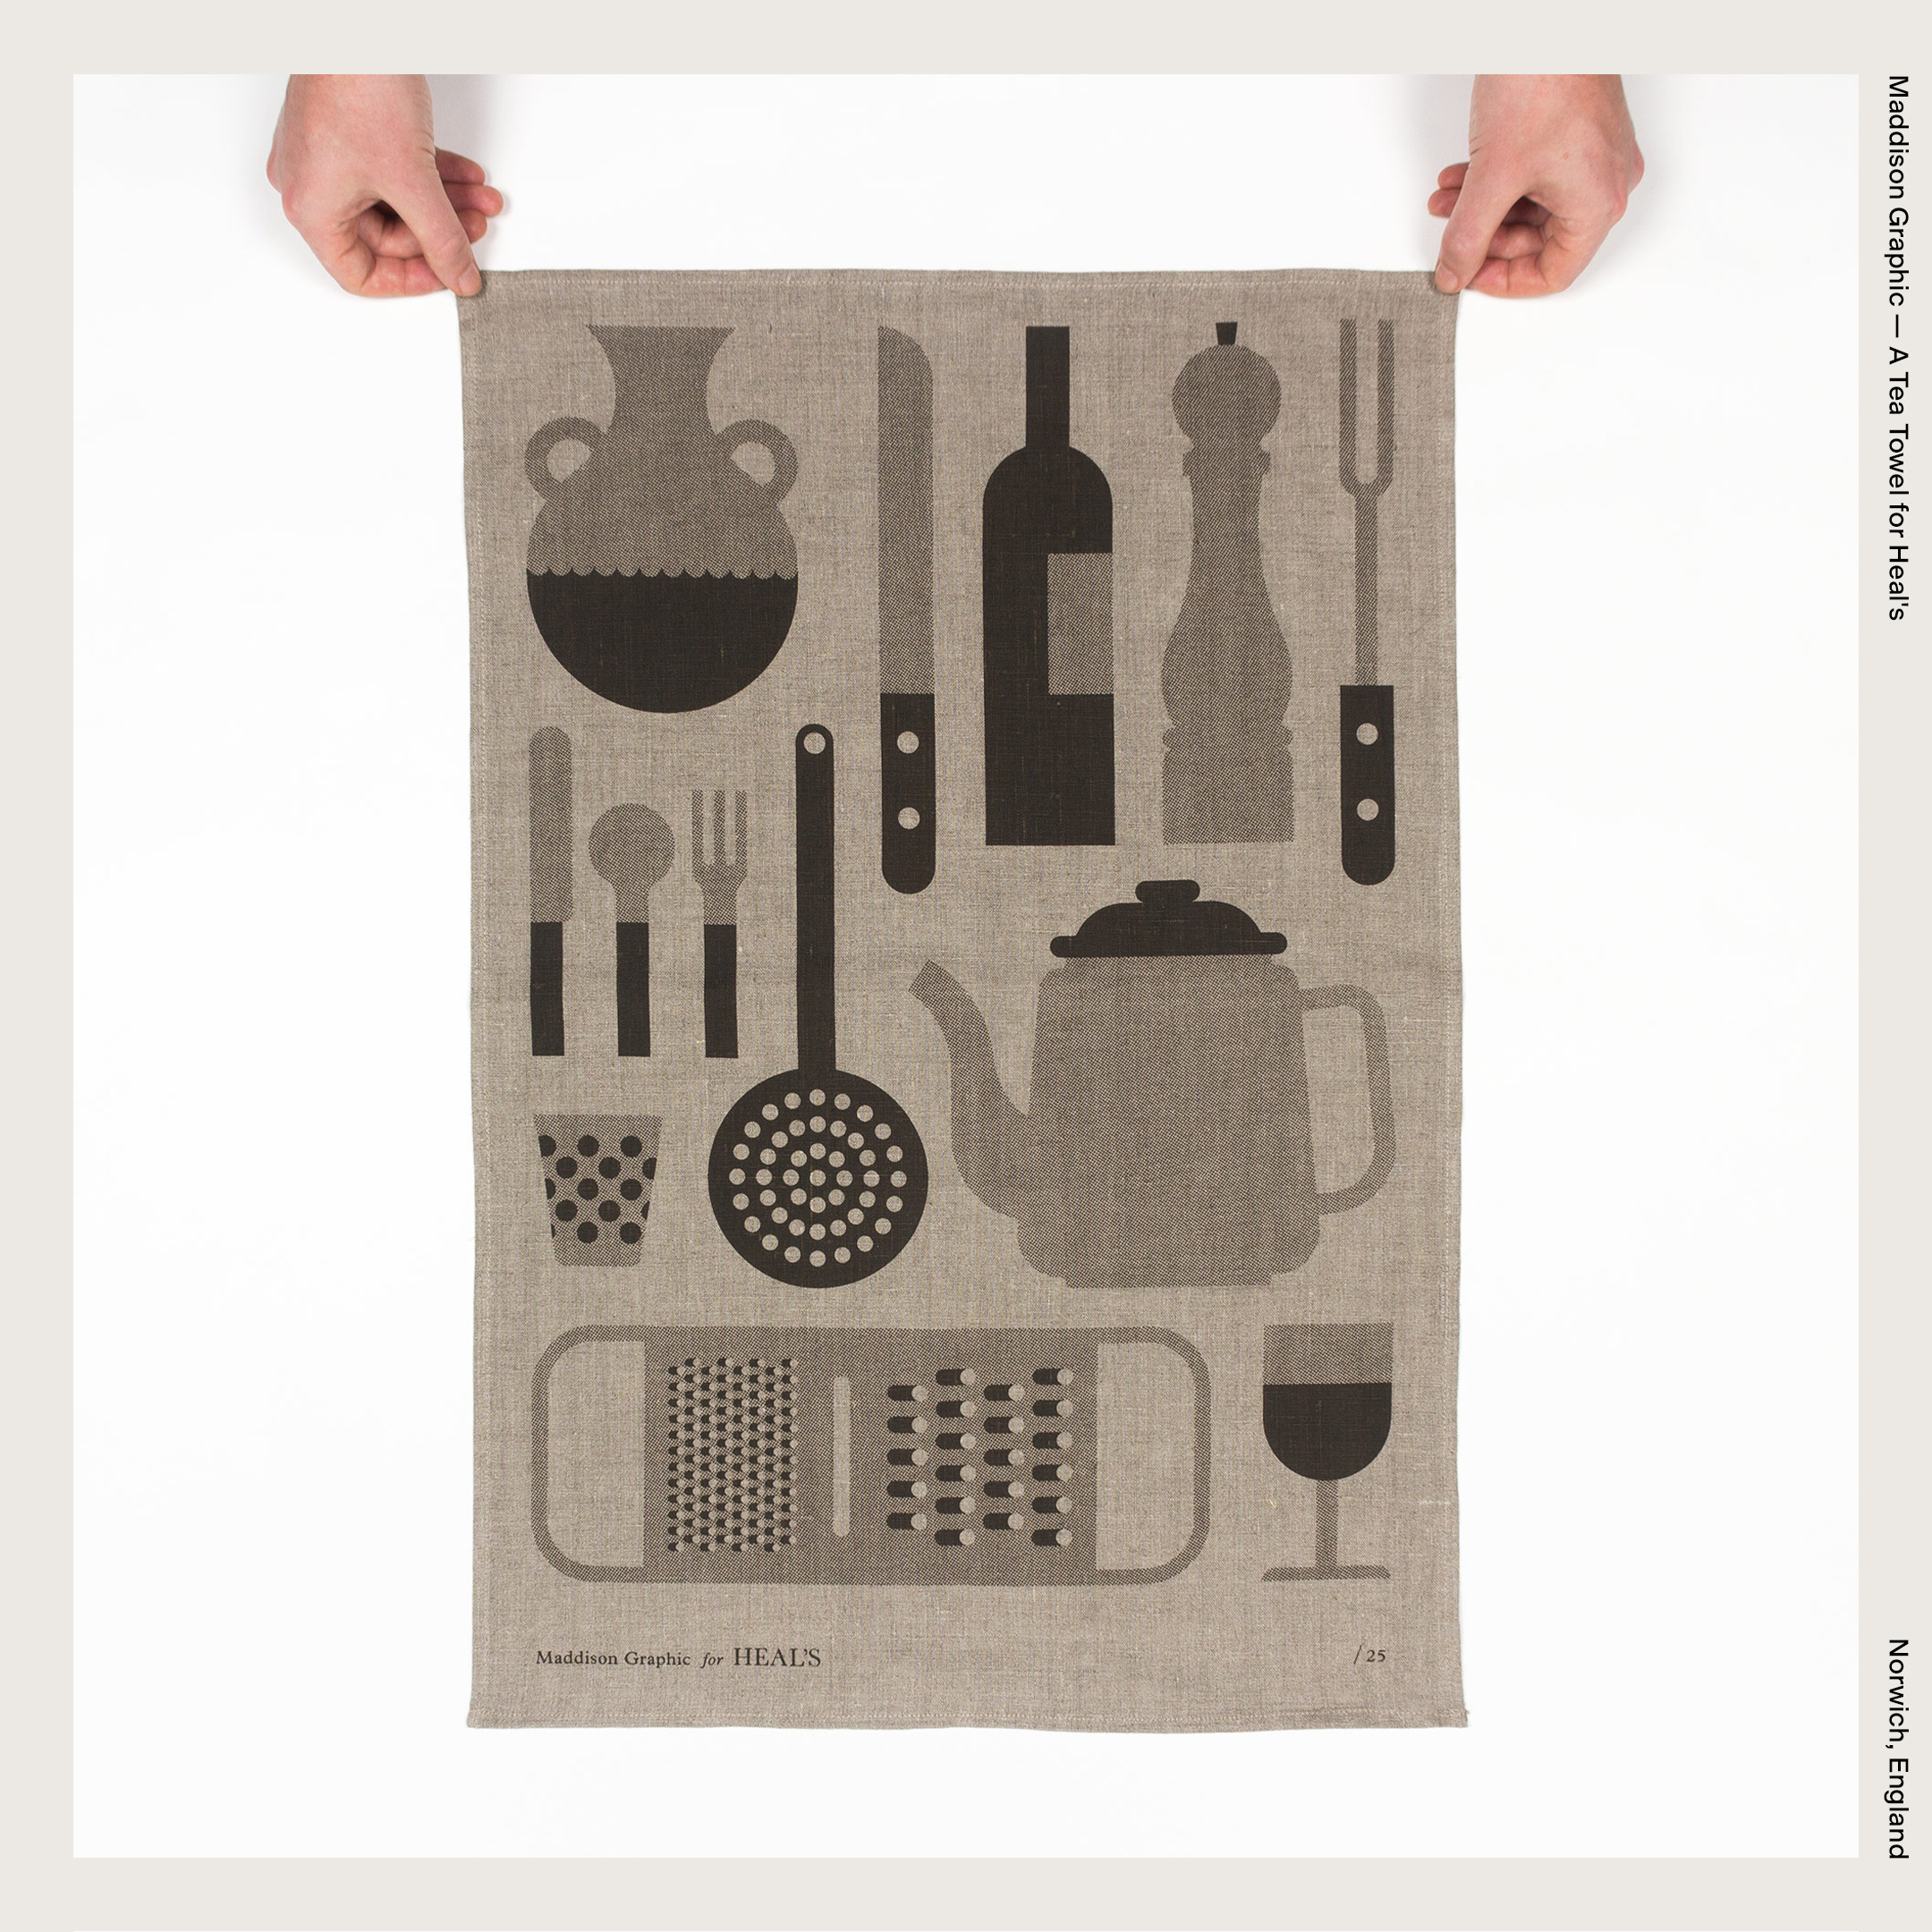 Maddison Graphic — A Tea Towel for Heal's